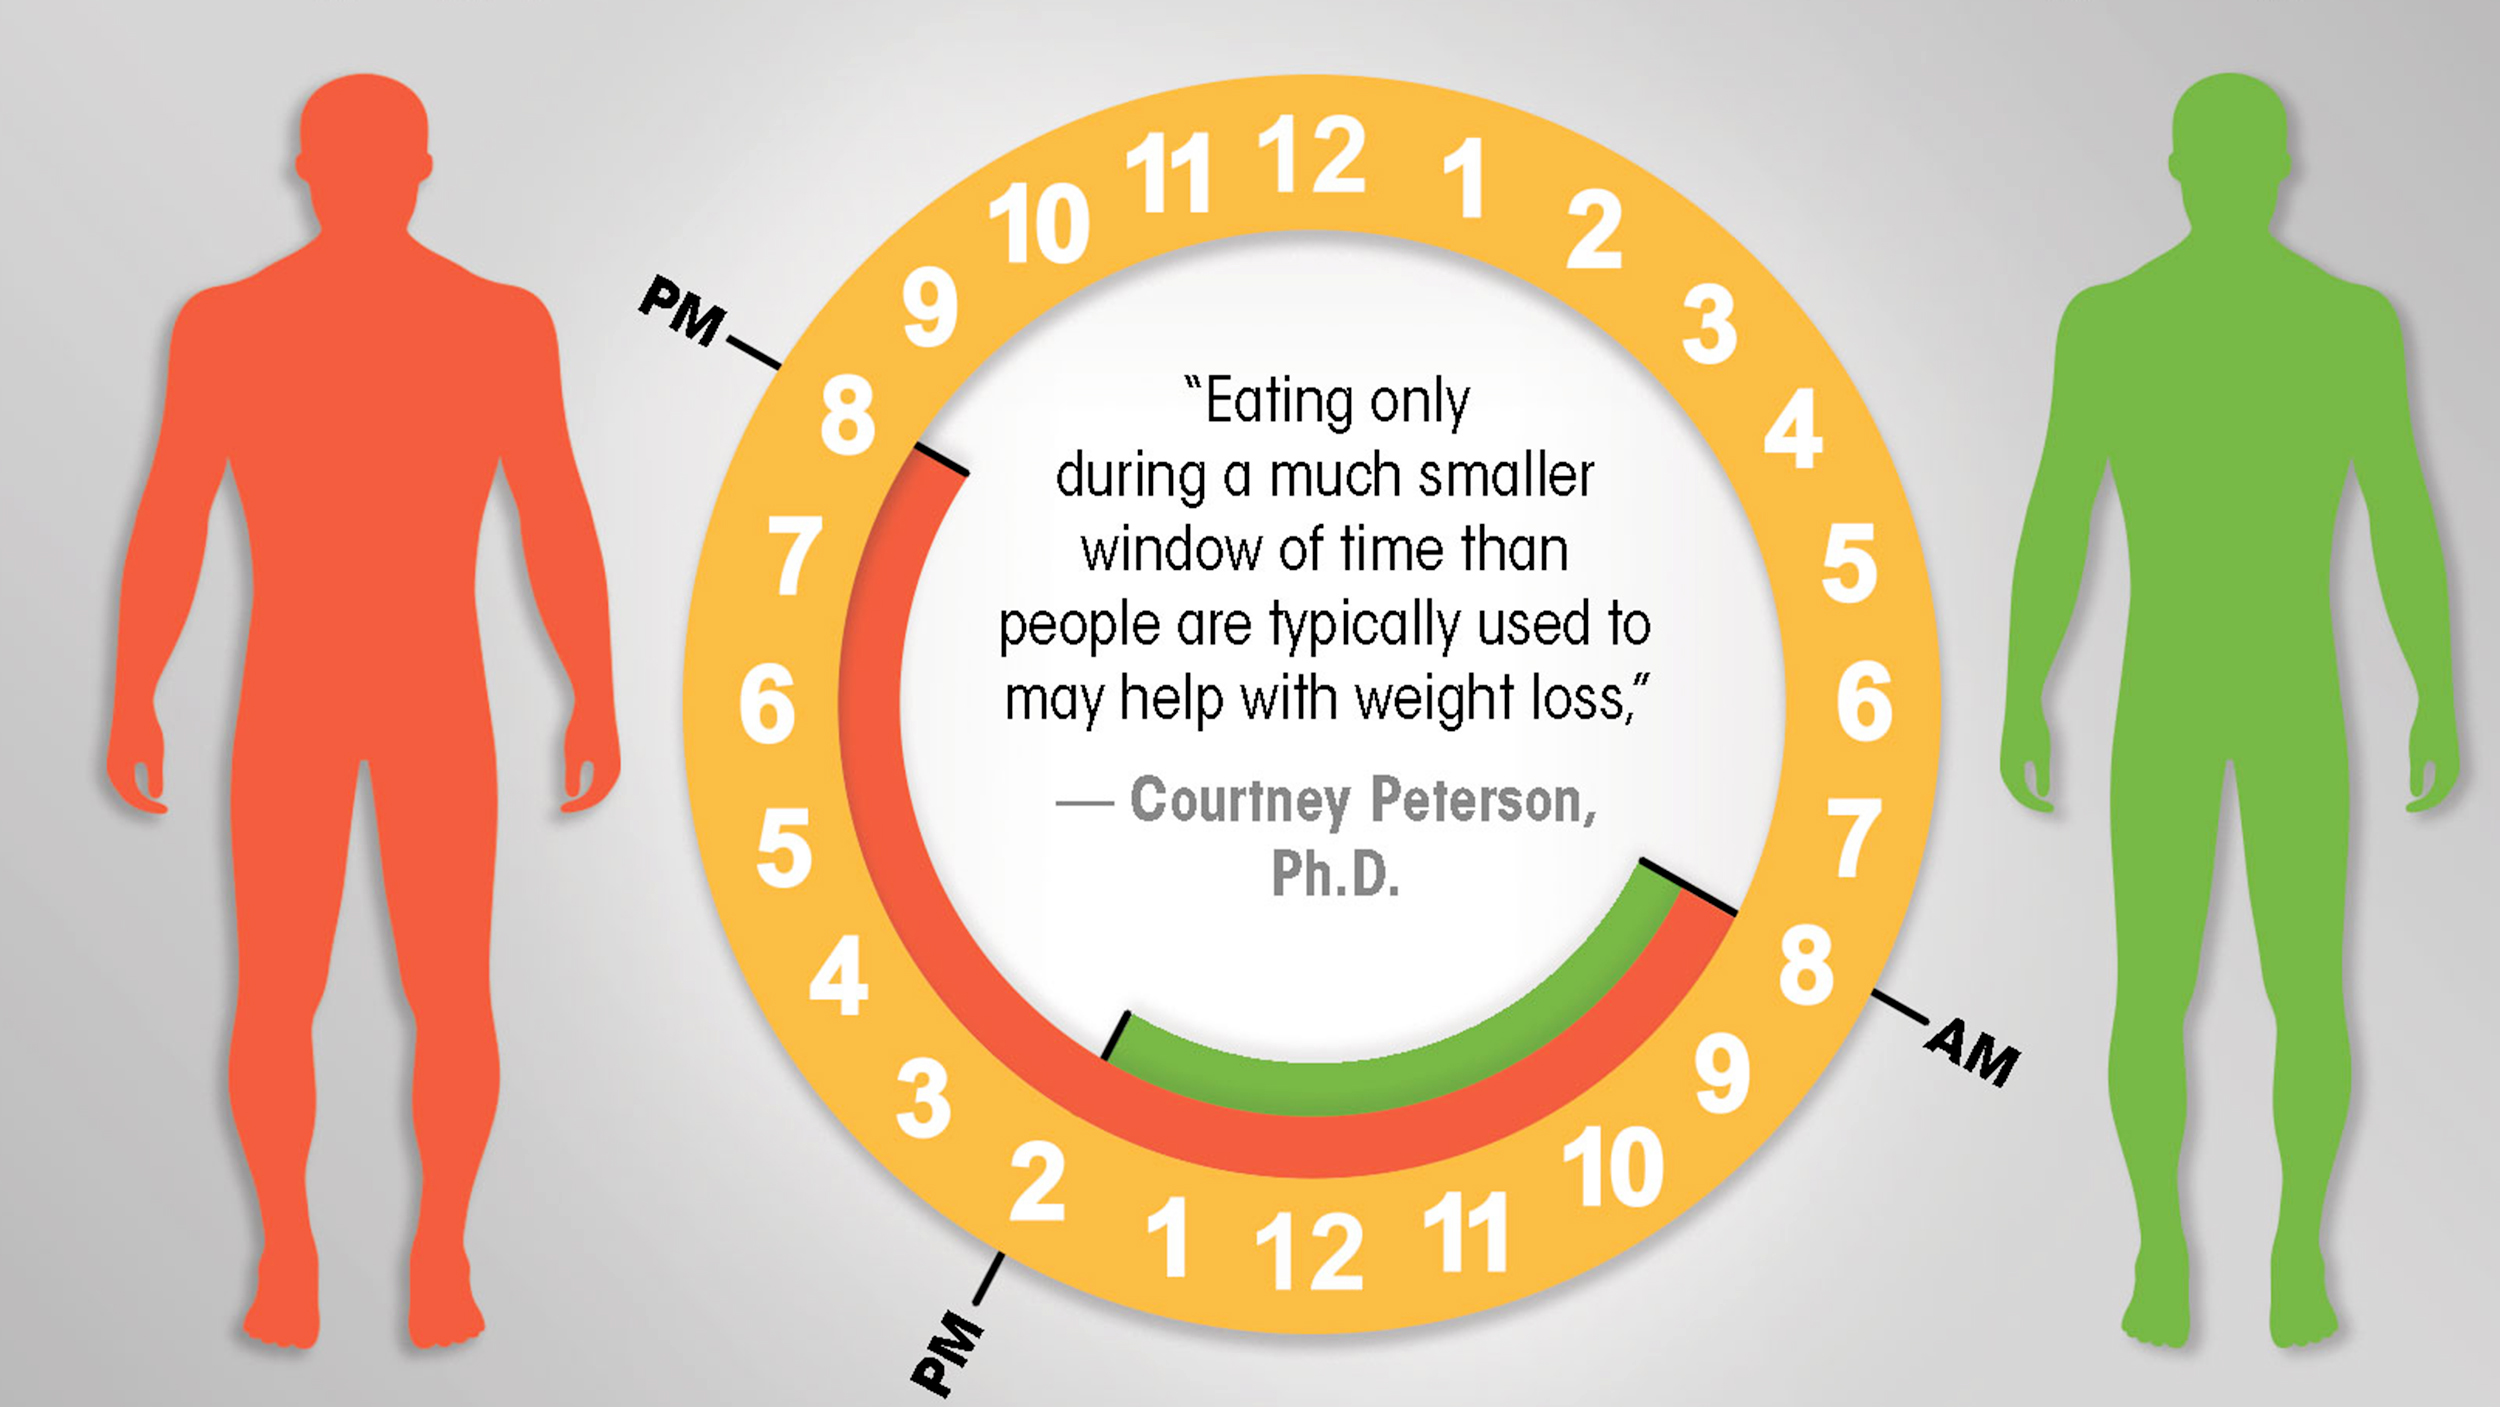 Weight Of Time >> Timing Of Meals May Be A Factor In Losing Weight